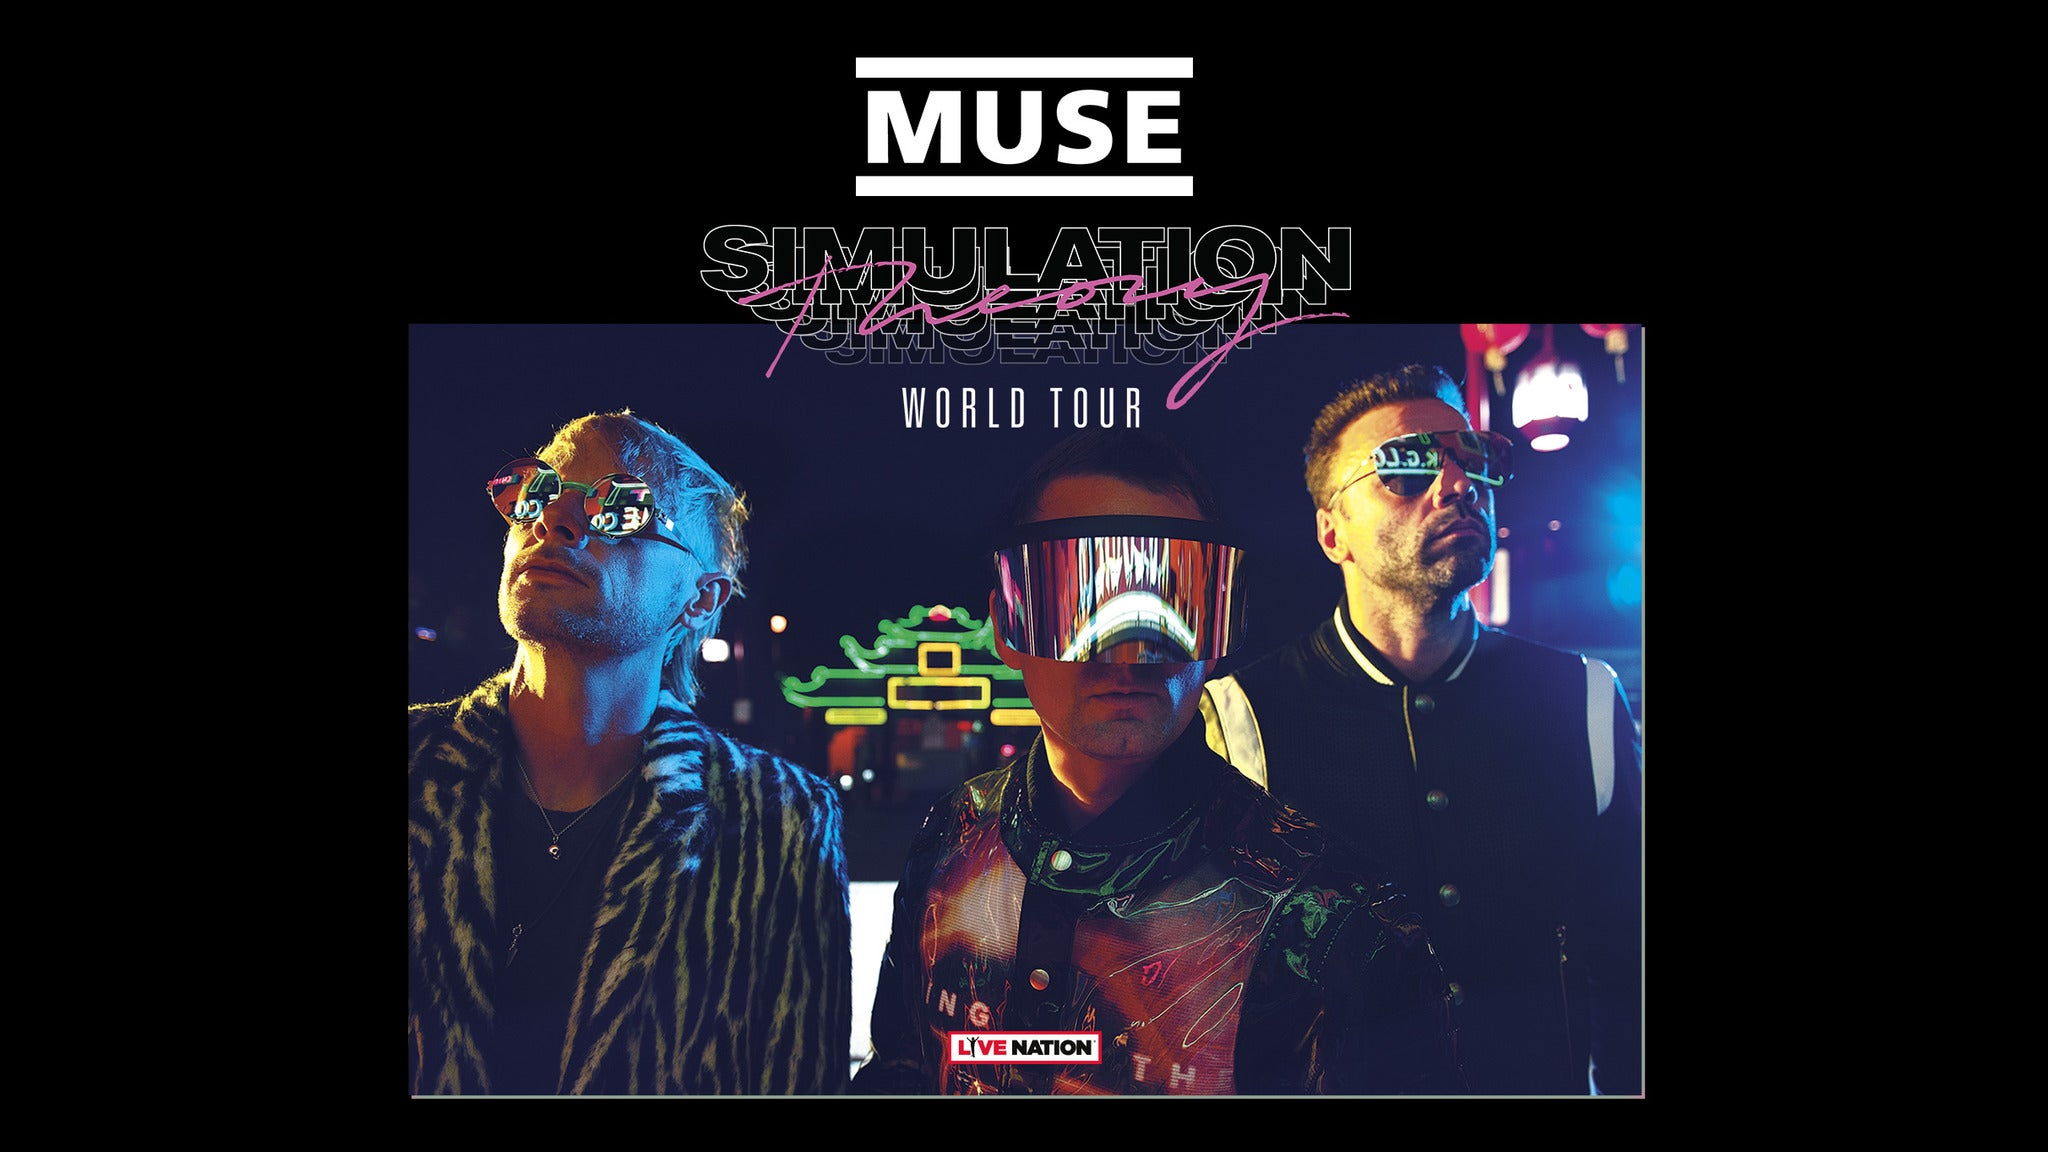 Muse: Simulation Theory World Tour at The Forum